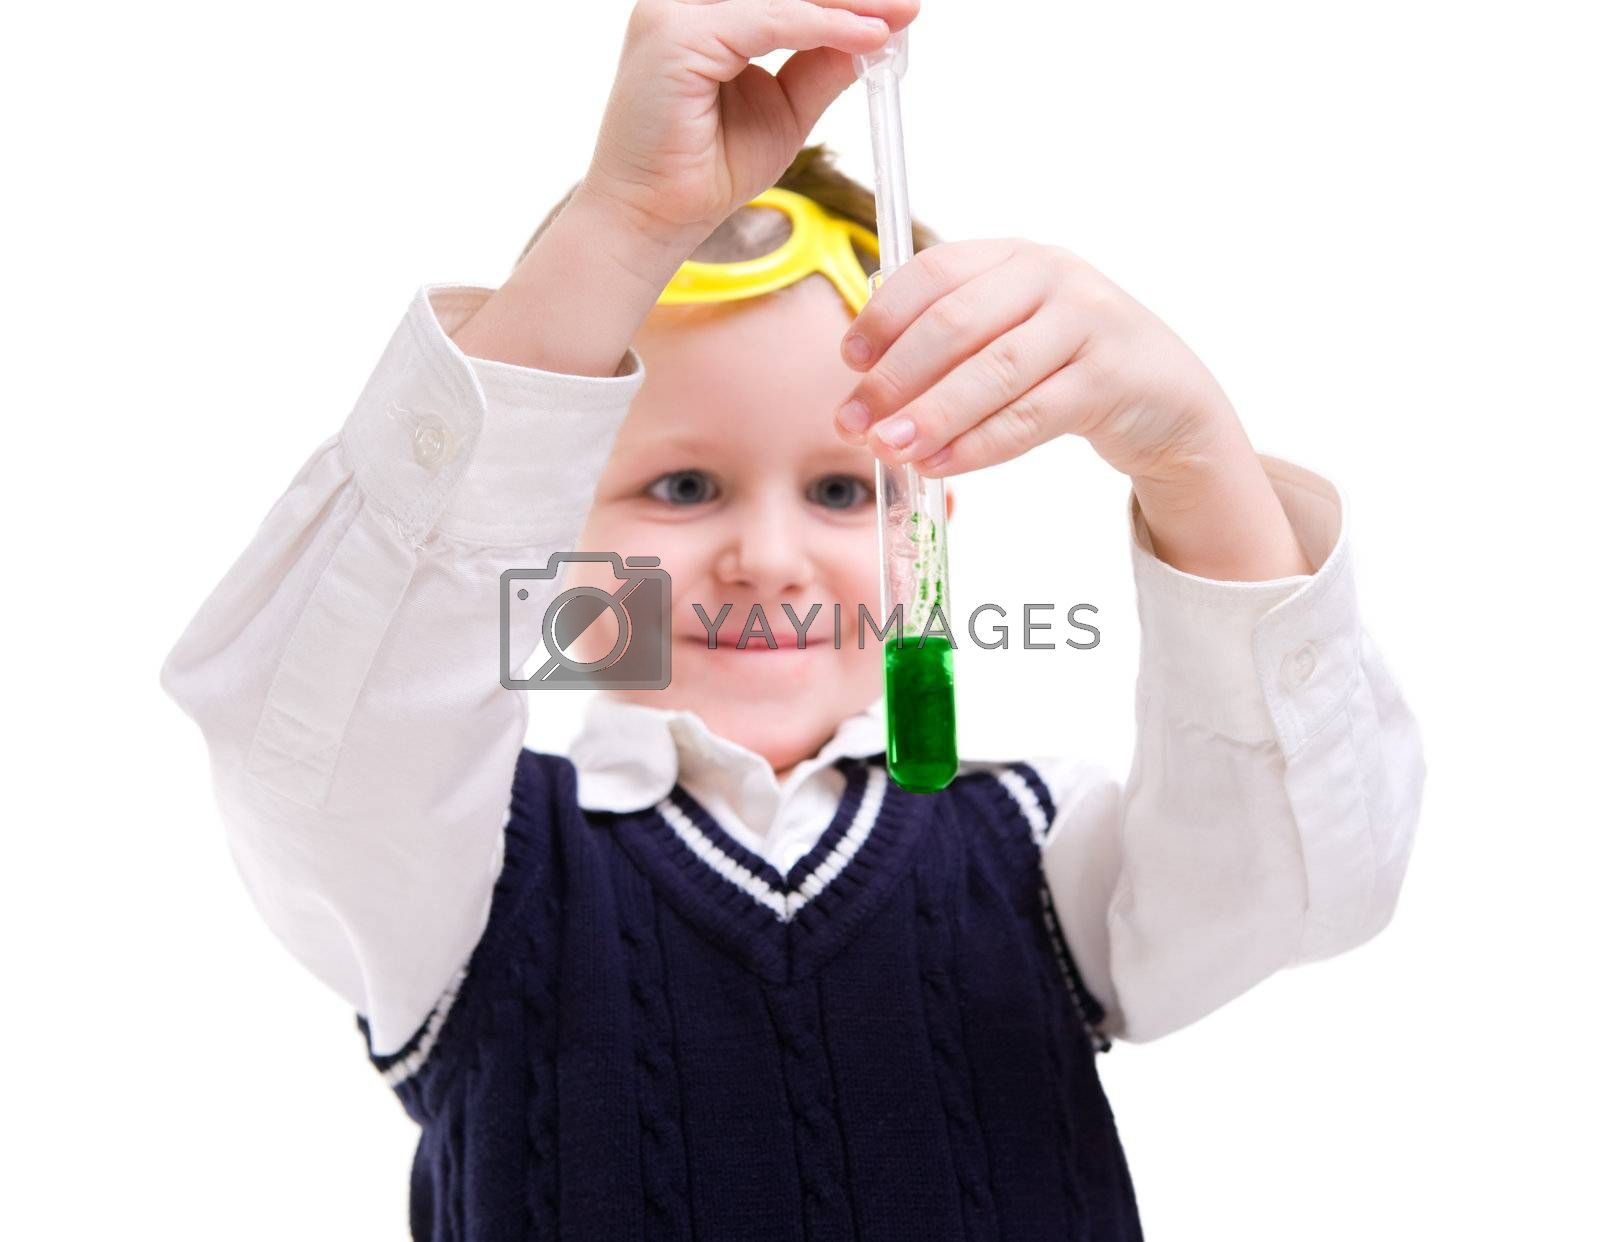 Young boy performing chemistry experiments